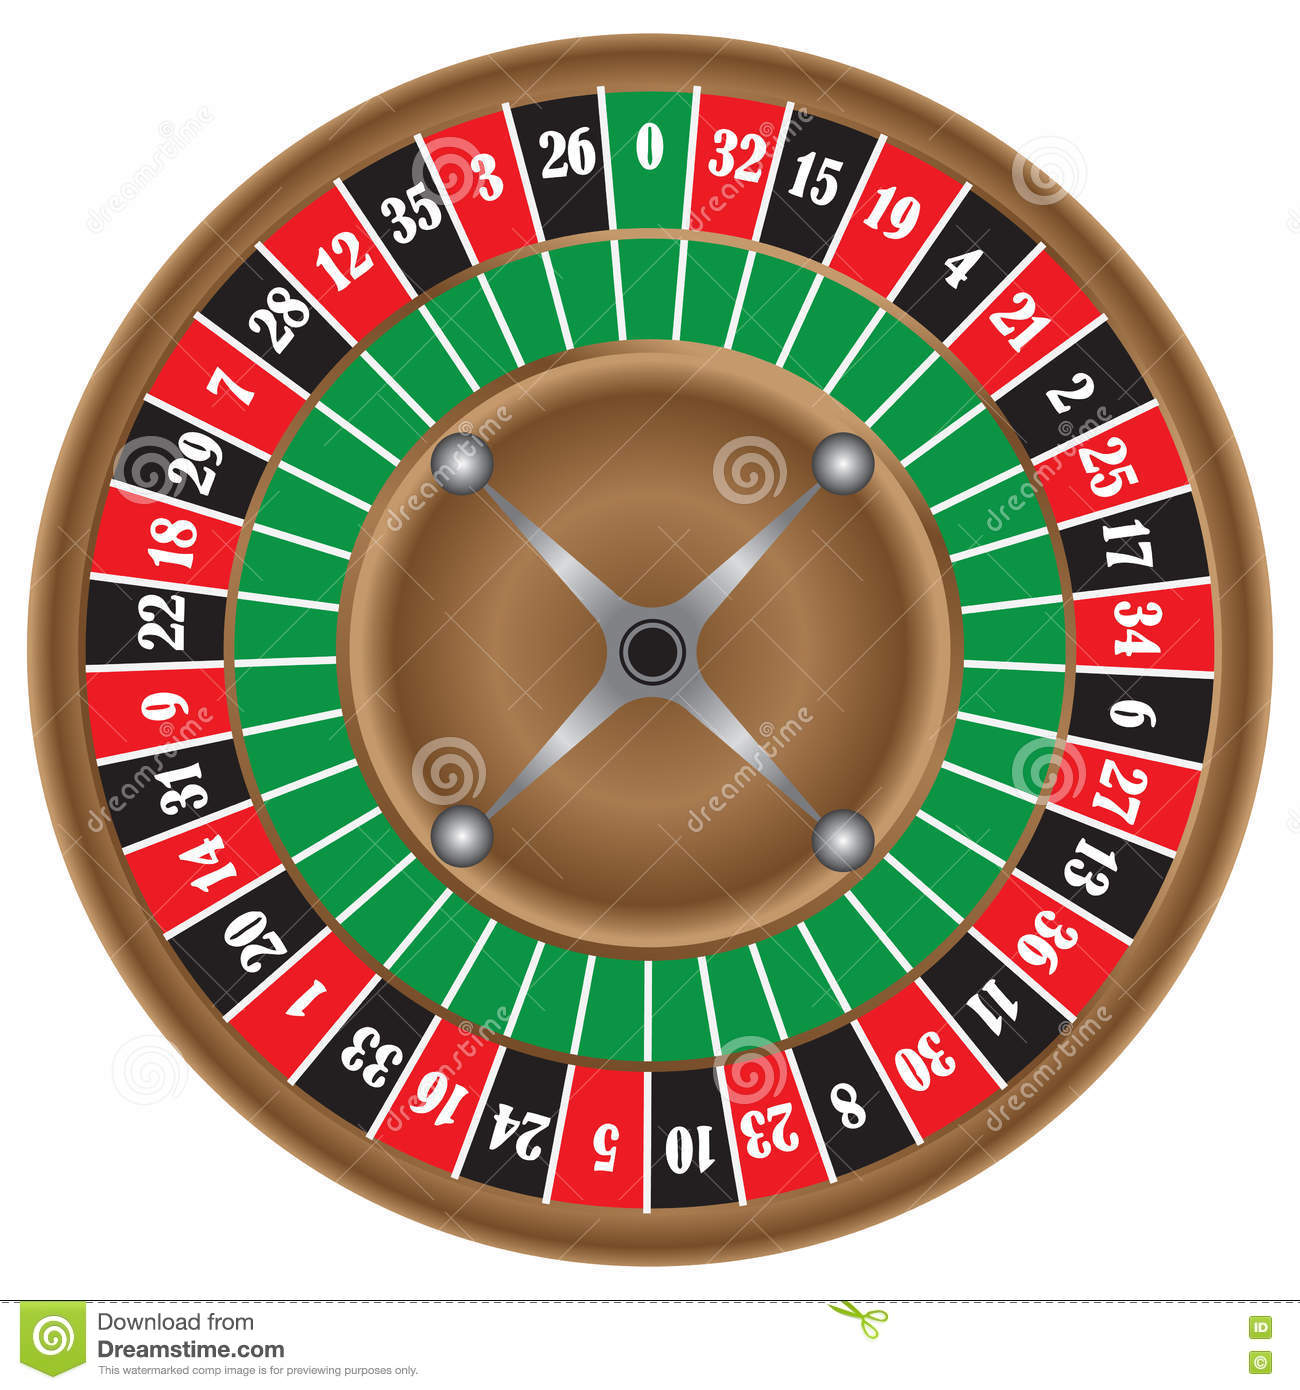 Roulette odds 98679